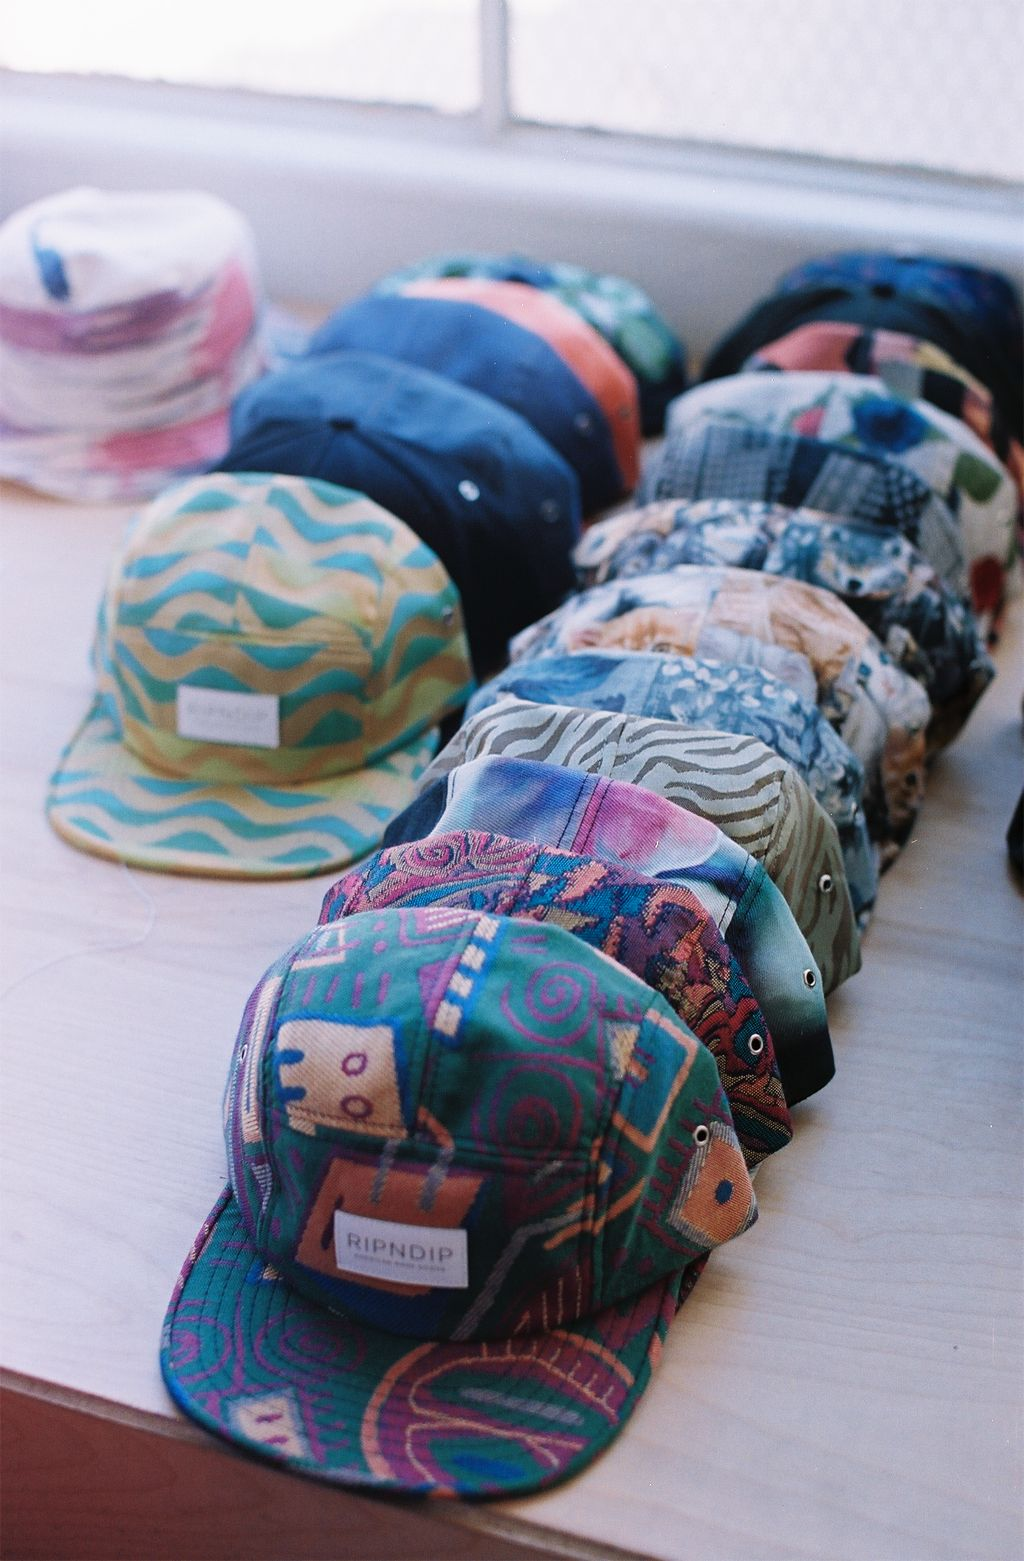 a258a2f7 5 panel hats // Ripndip | Style | Hats, Fashion, Panel hat